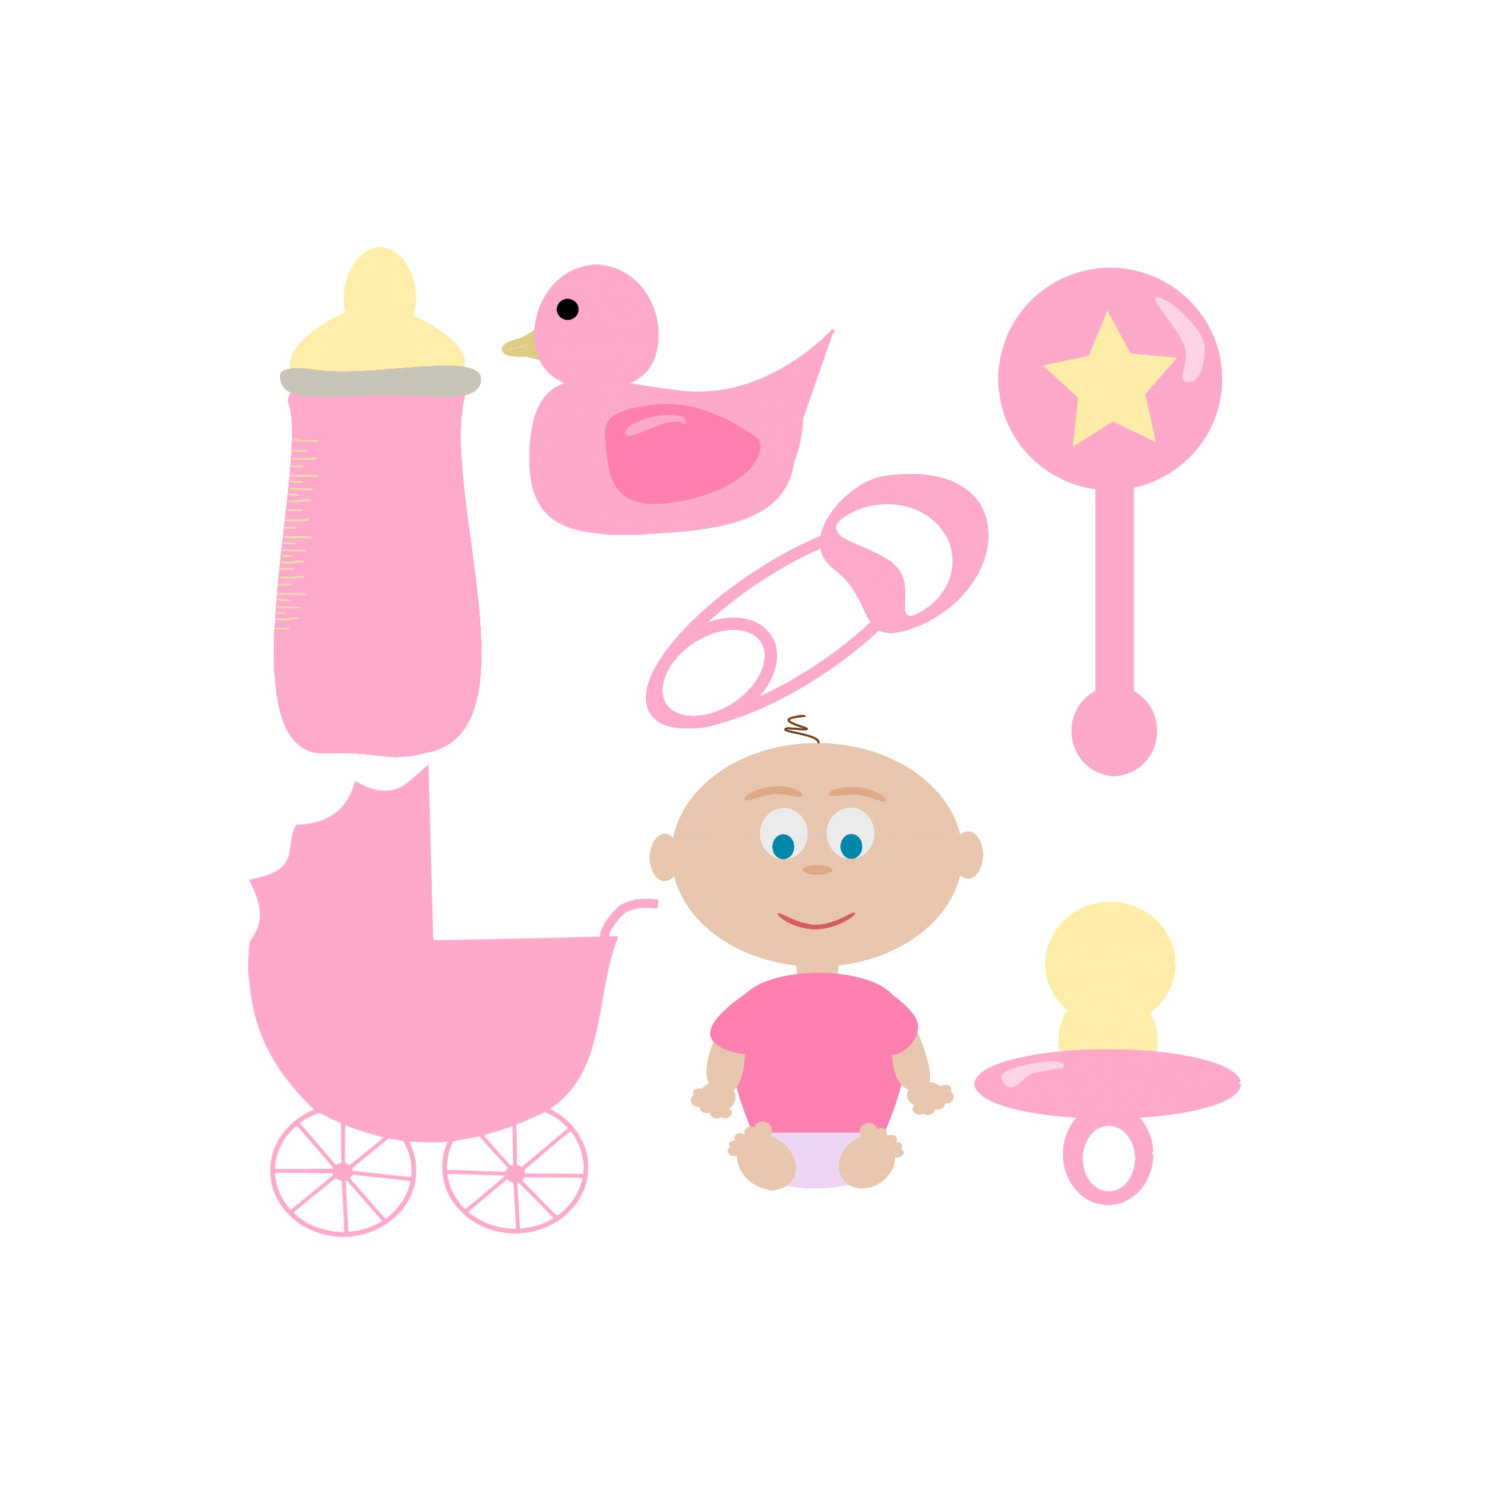 Baby shower clipart nina transparent Free Baby Related Cliparts, Download Free Clip Art, Free Clip Art on ... transparent